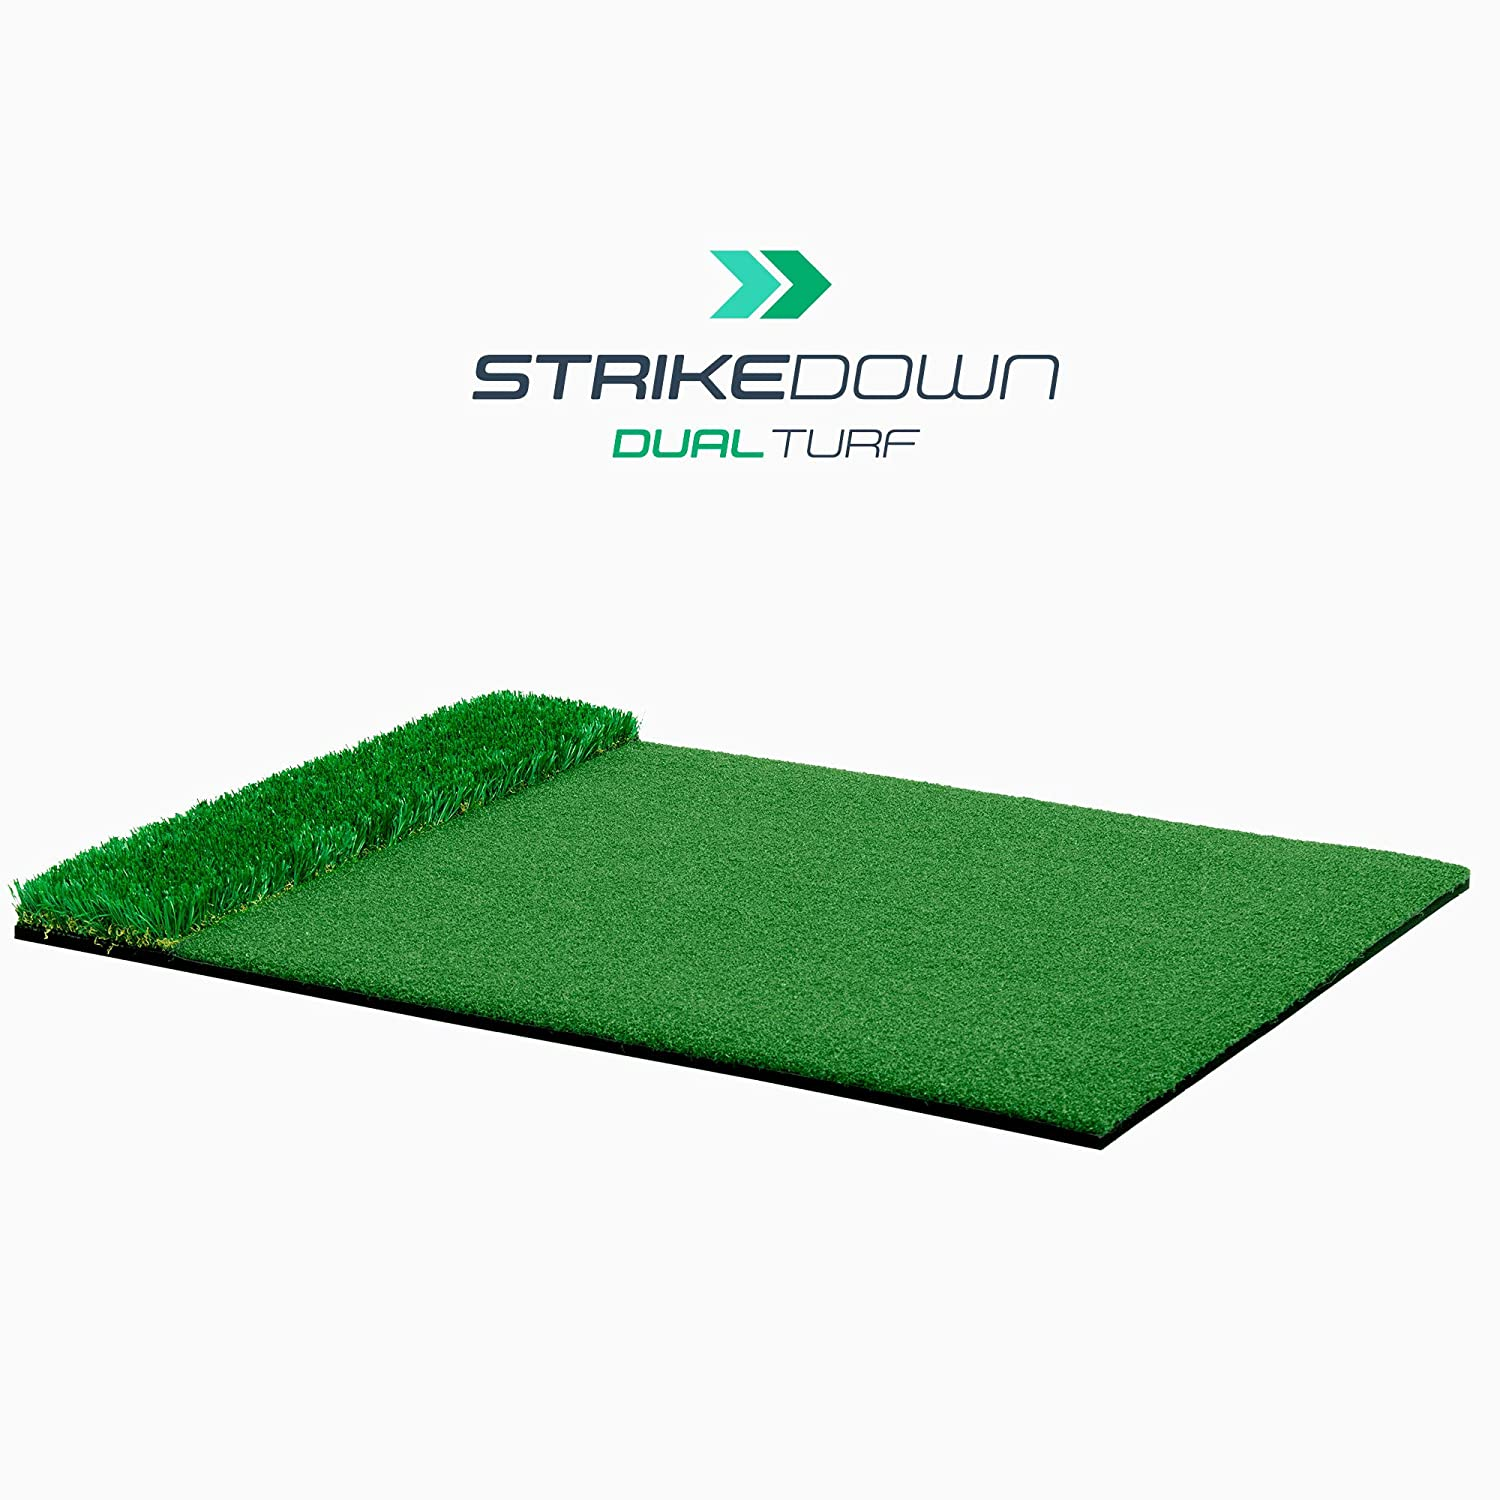 Motivo Golf StrikeDown Dual-Turf Plus Golf Hitting Mat 2 x 3 Feet Free Two-Day Delivery